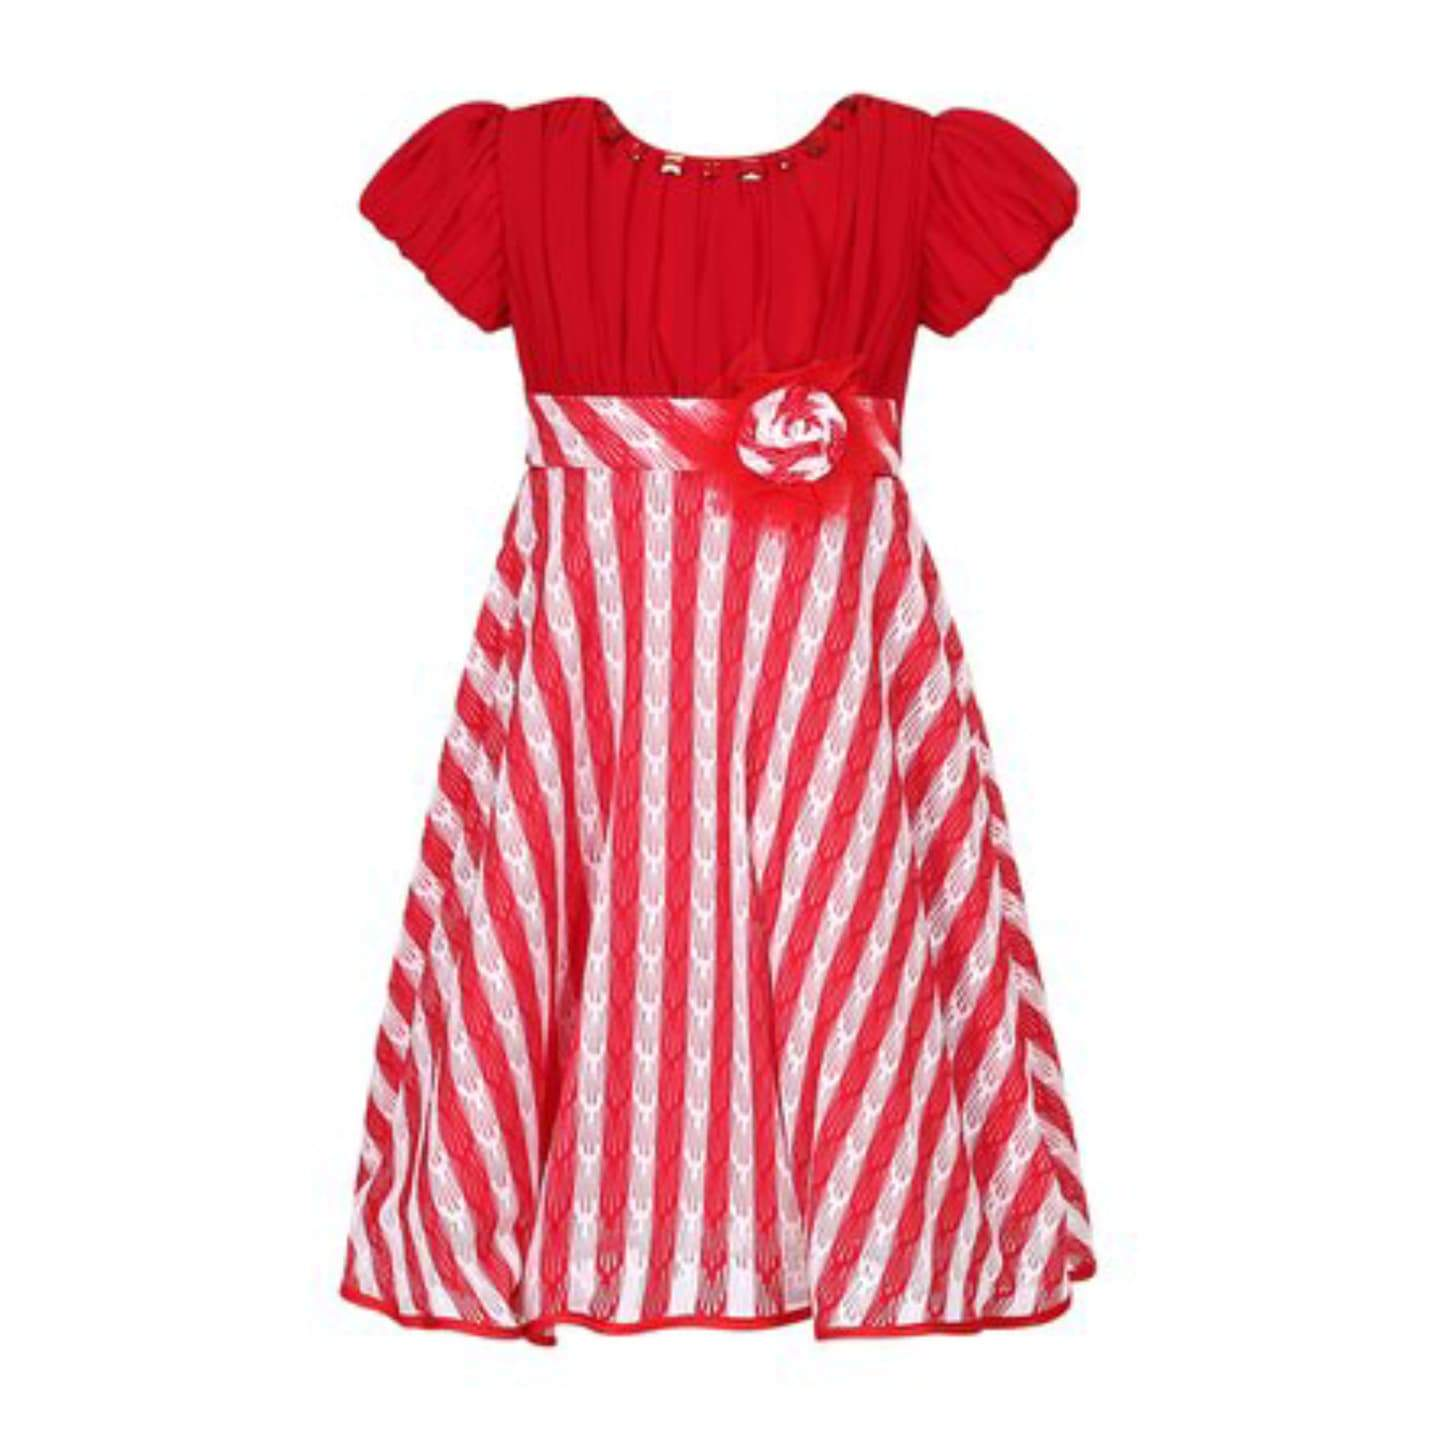 Richie House Baby Girls Red & White Stripe Short-Sleeve Party Dress